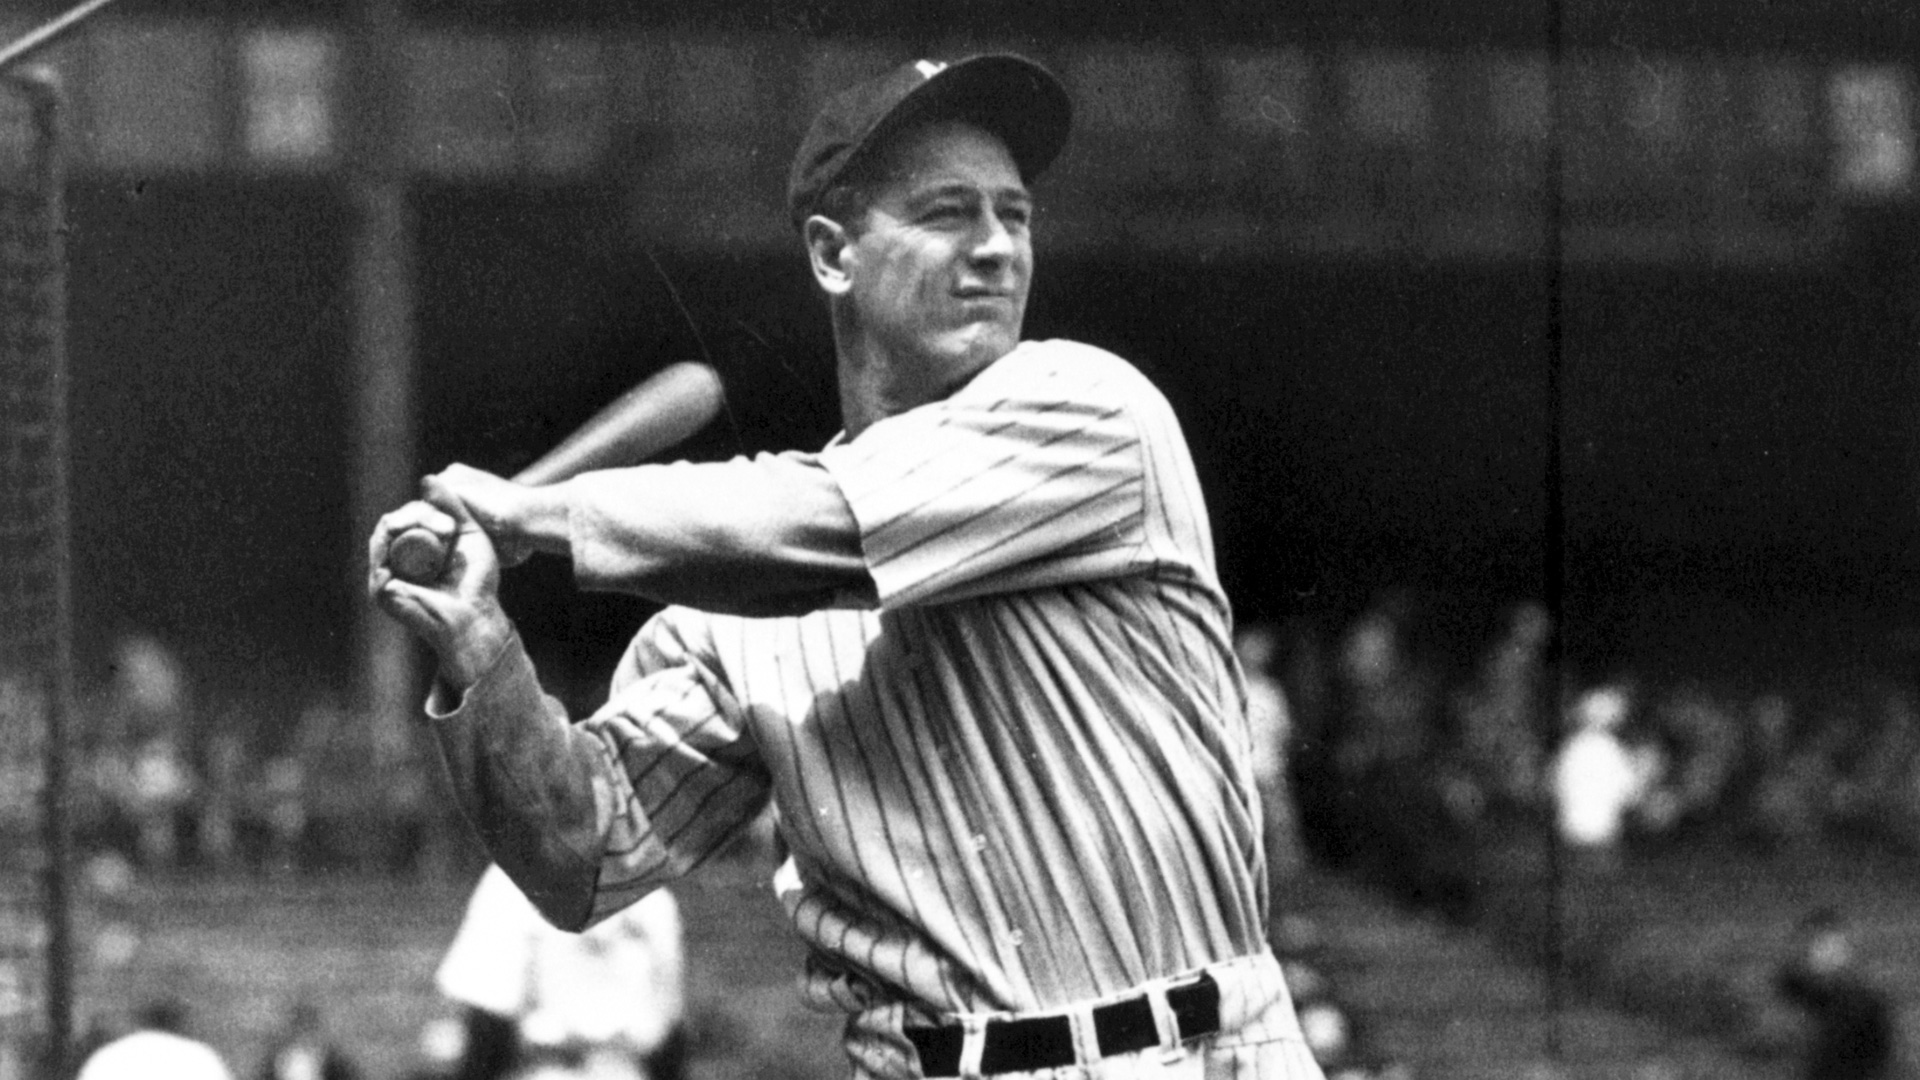 MLB's first All-Star Game and the schedule change that kept Lou Gehrig's streak alive